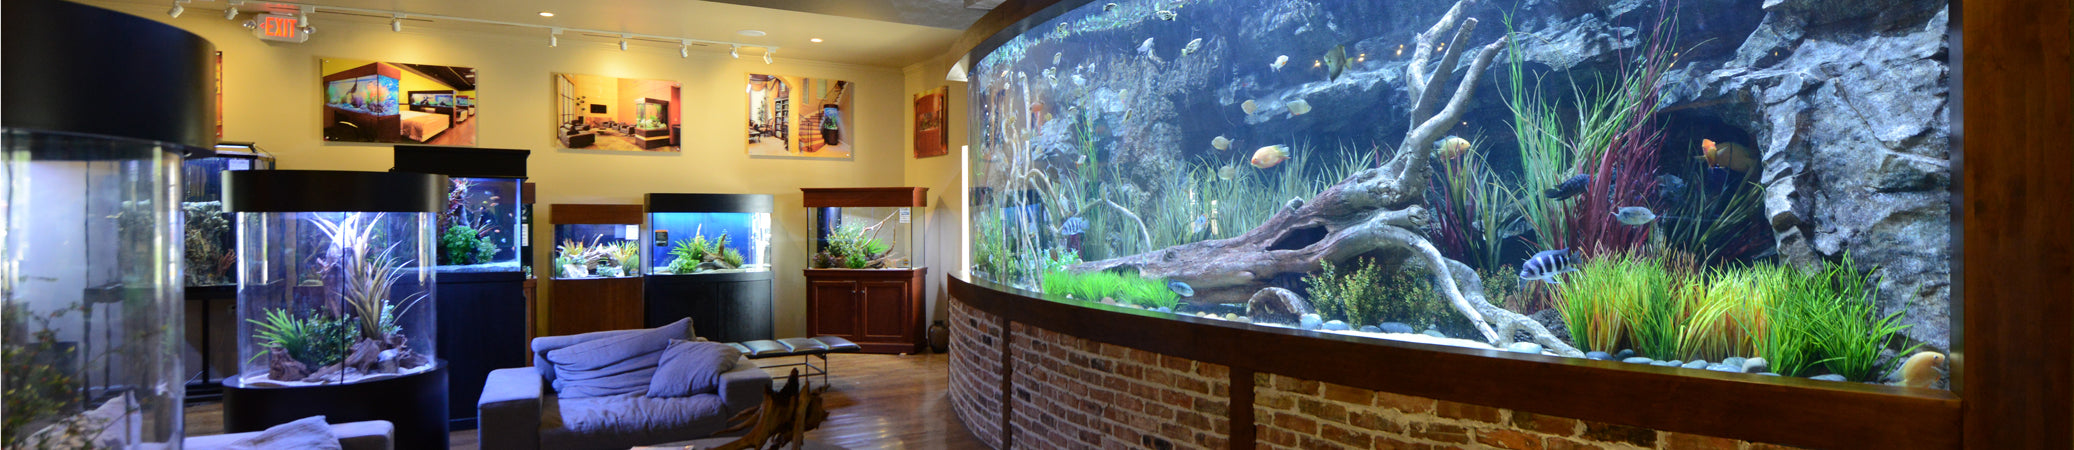 Freshwater aquarium fish houston - Houston Team